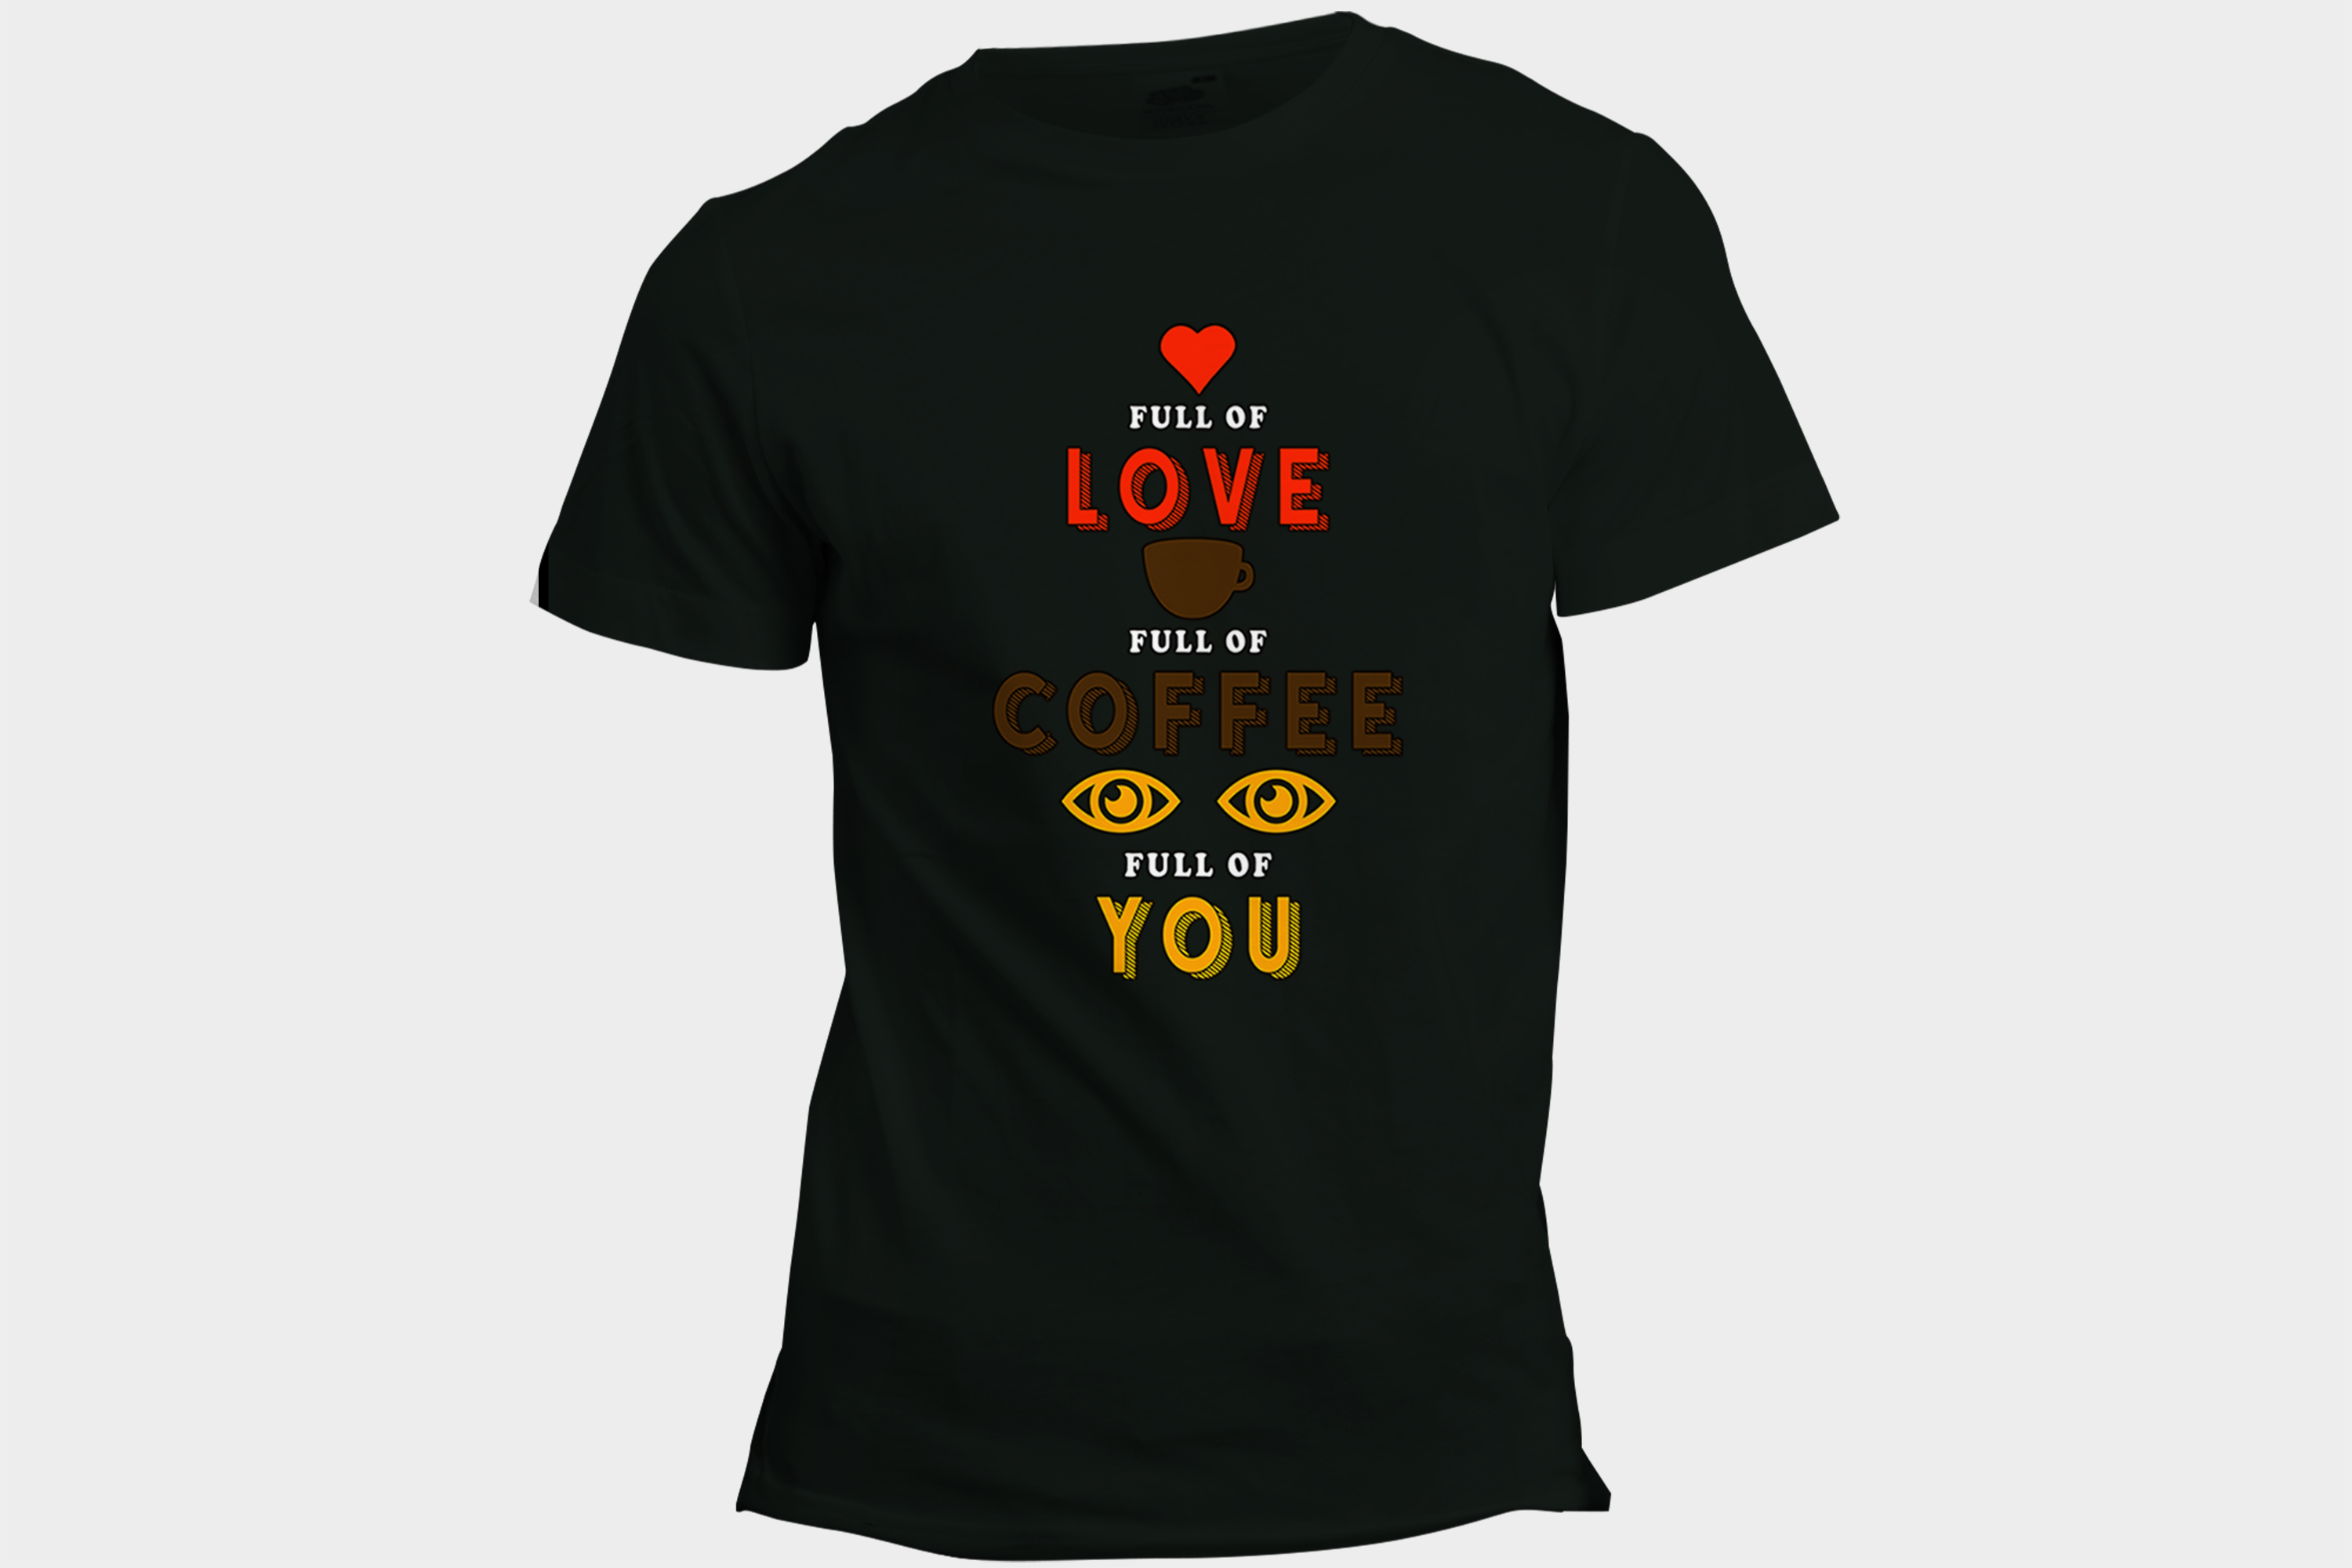 Love Coffee You example image 7